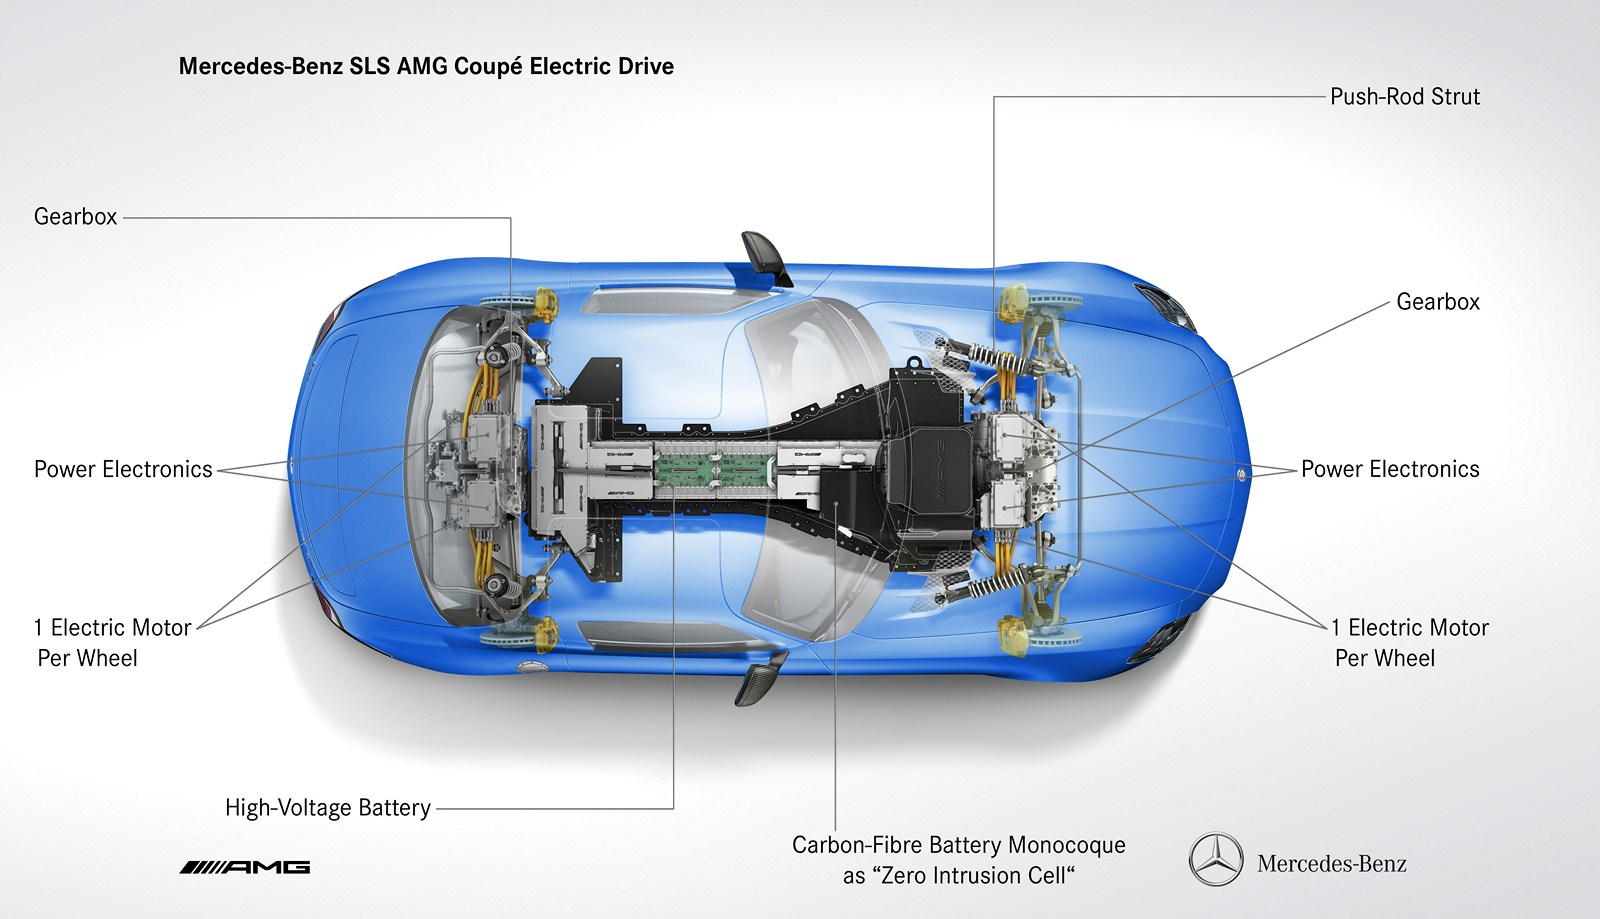 http://www.autoblog.gr/wp-content/gallery/mercedes-sls-amg-electric-drive/mercedes-sls-amg-electric-drive-33.jpg